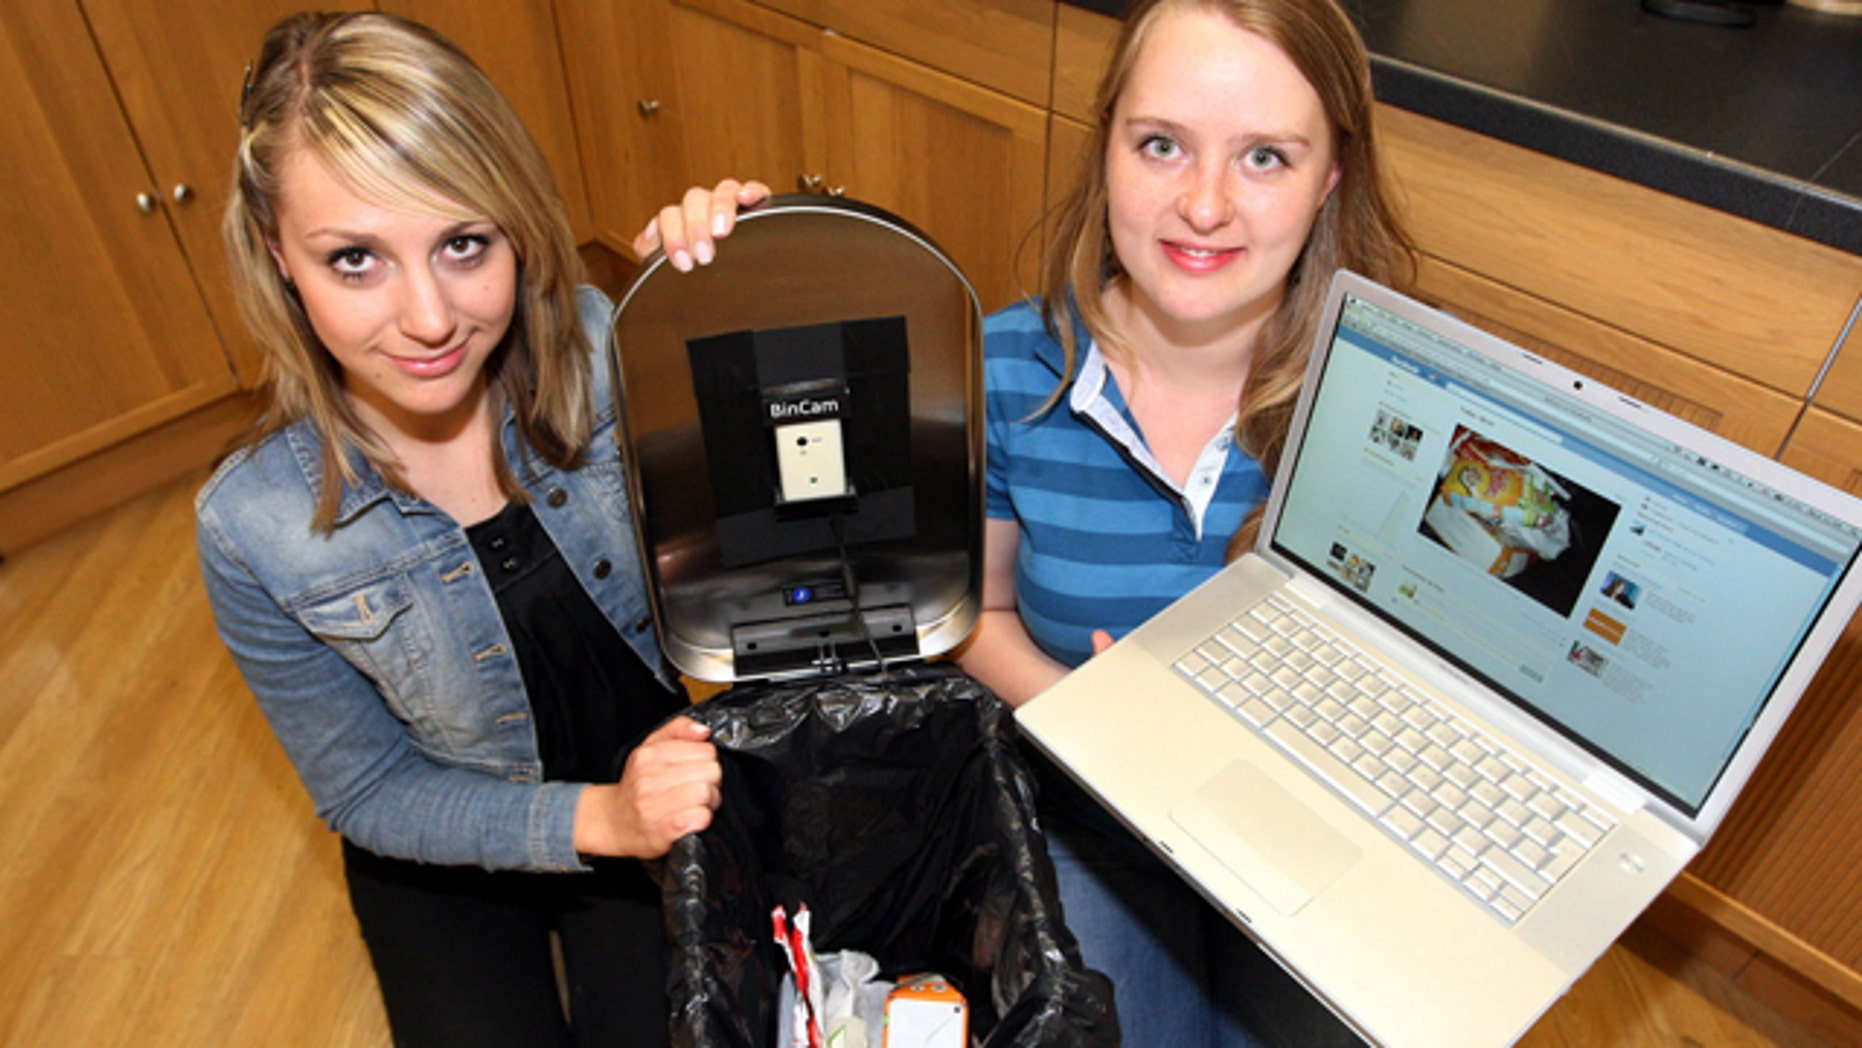 June 8, 2011: Newcastle University students Julia Miebach, left, and Anja Thieme, right, with the Bincam and a laptop showing its Facebook page. Five households have signed up for a program announced Wednesday that puts photographs of every item placed in a garbage can on Facebook, to raise consciousness about recycling efforts.